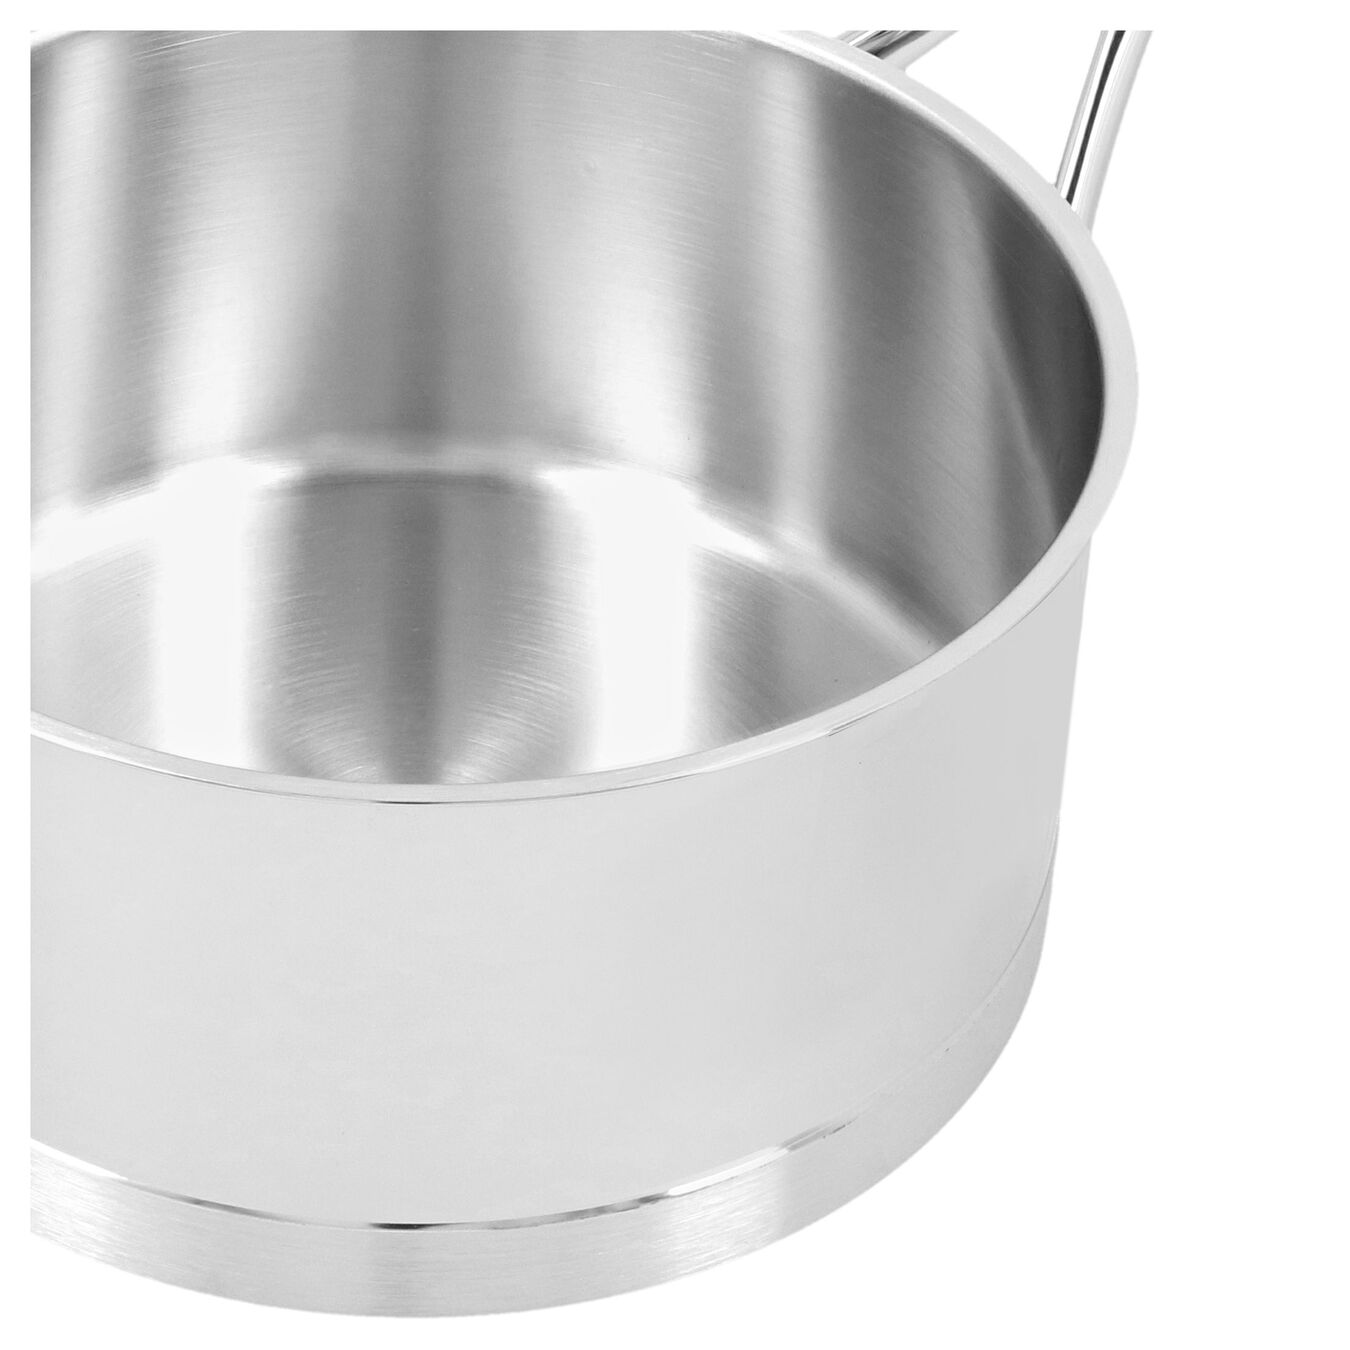 2.25 qt Sauce pan with lid, 18/10 Stainless Steel ,,large 6